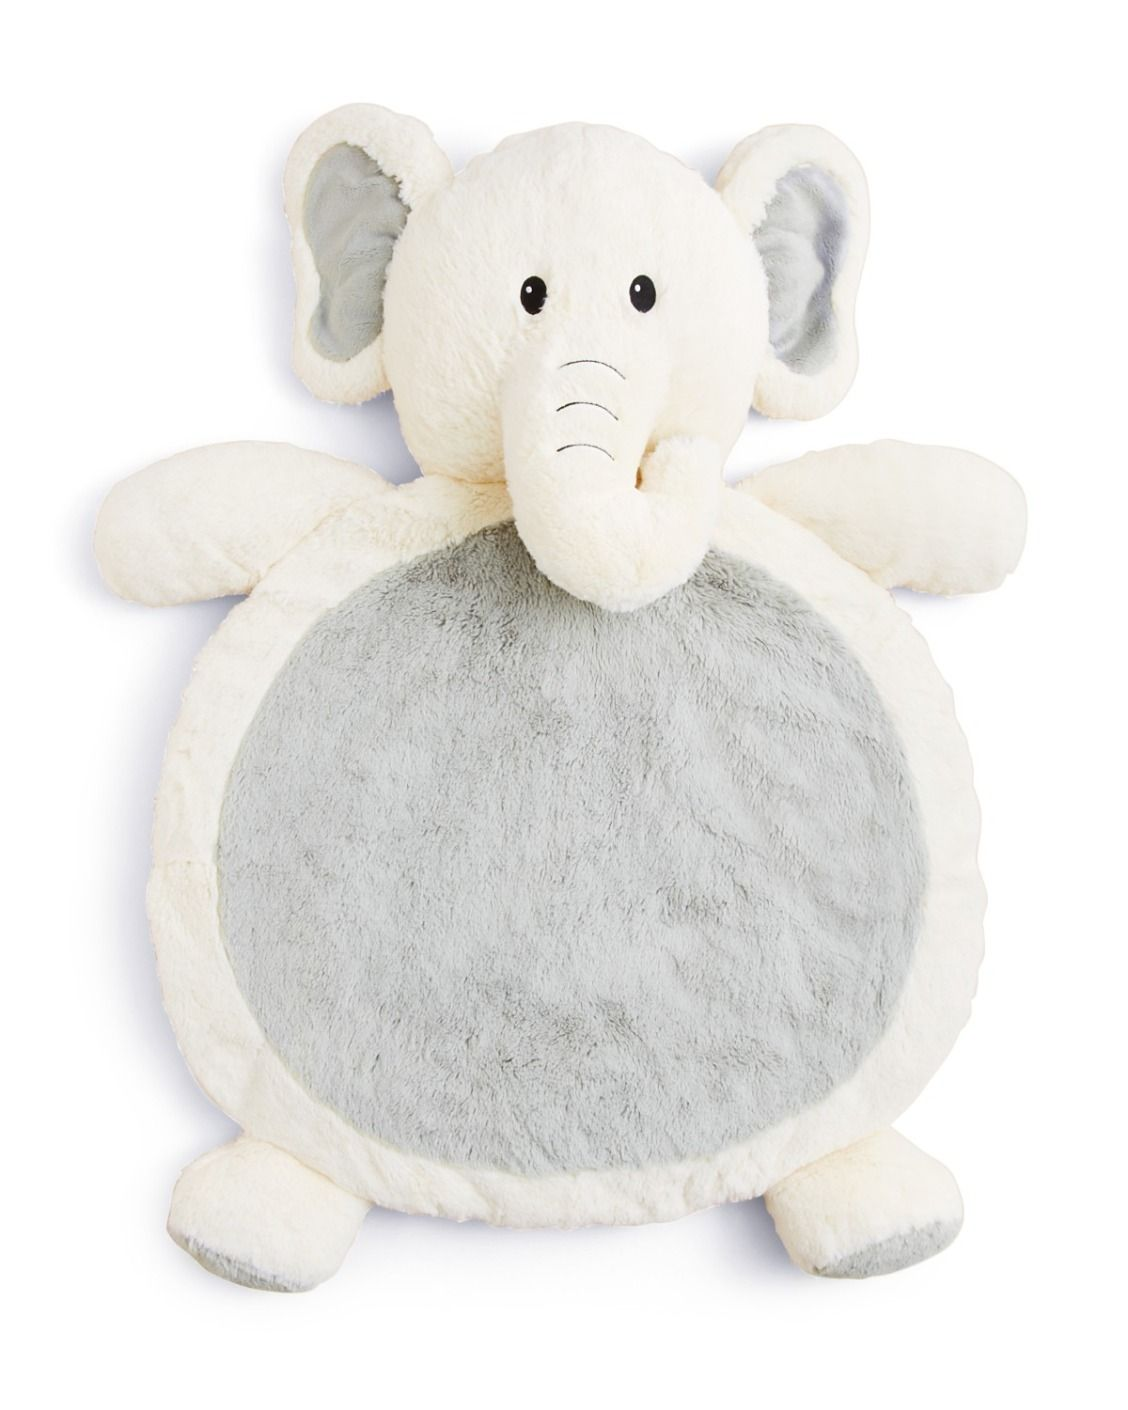 Baby Time Capsule On Pinterest: Baby Mats By Mary Meyer Elephant Play Mat, Ages 0+